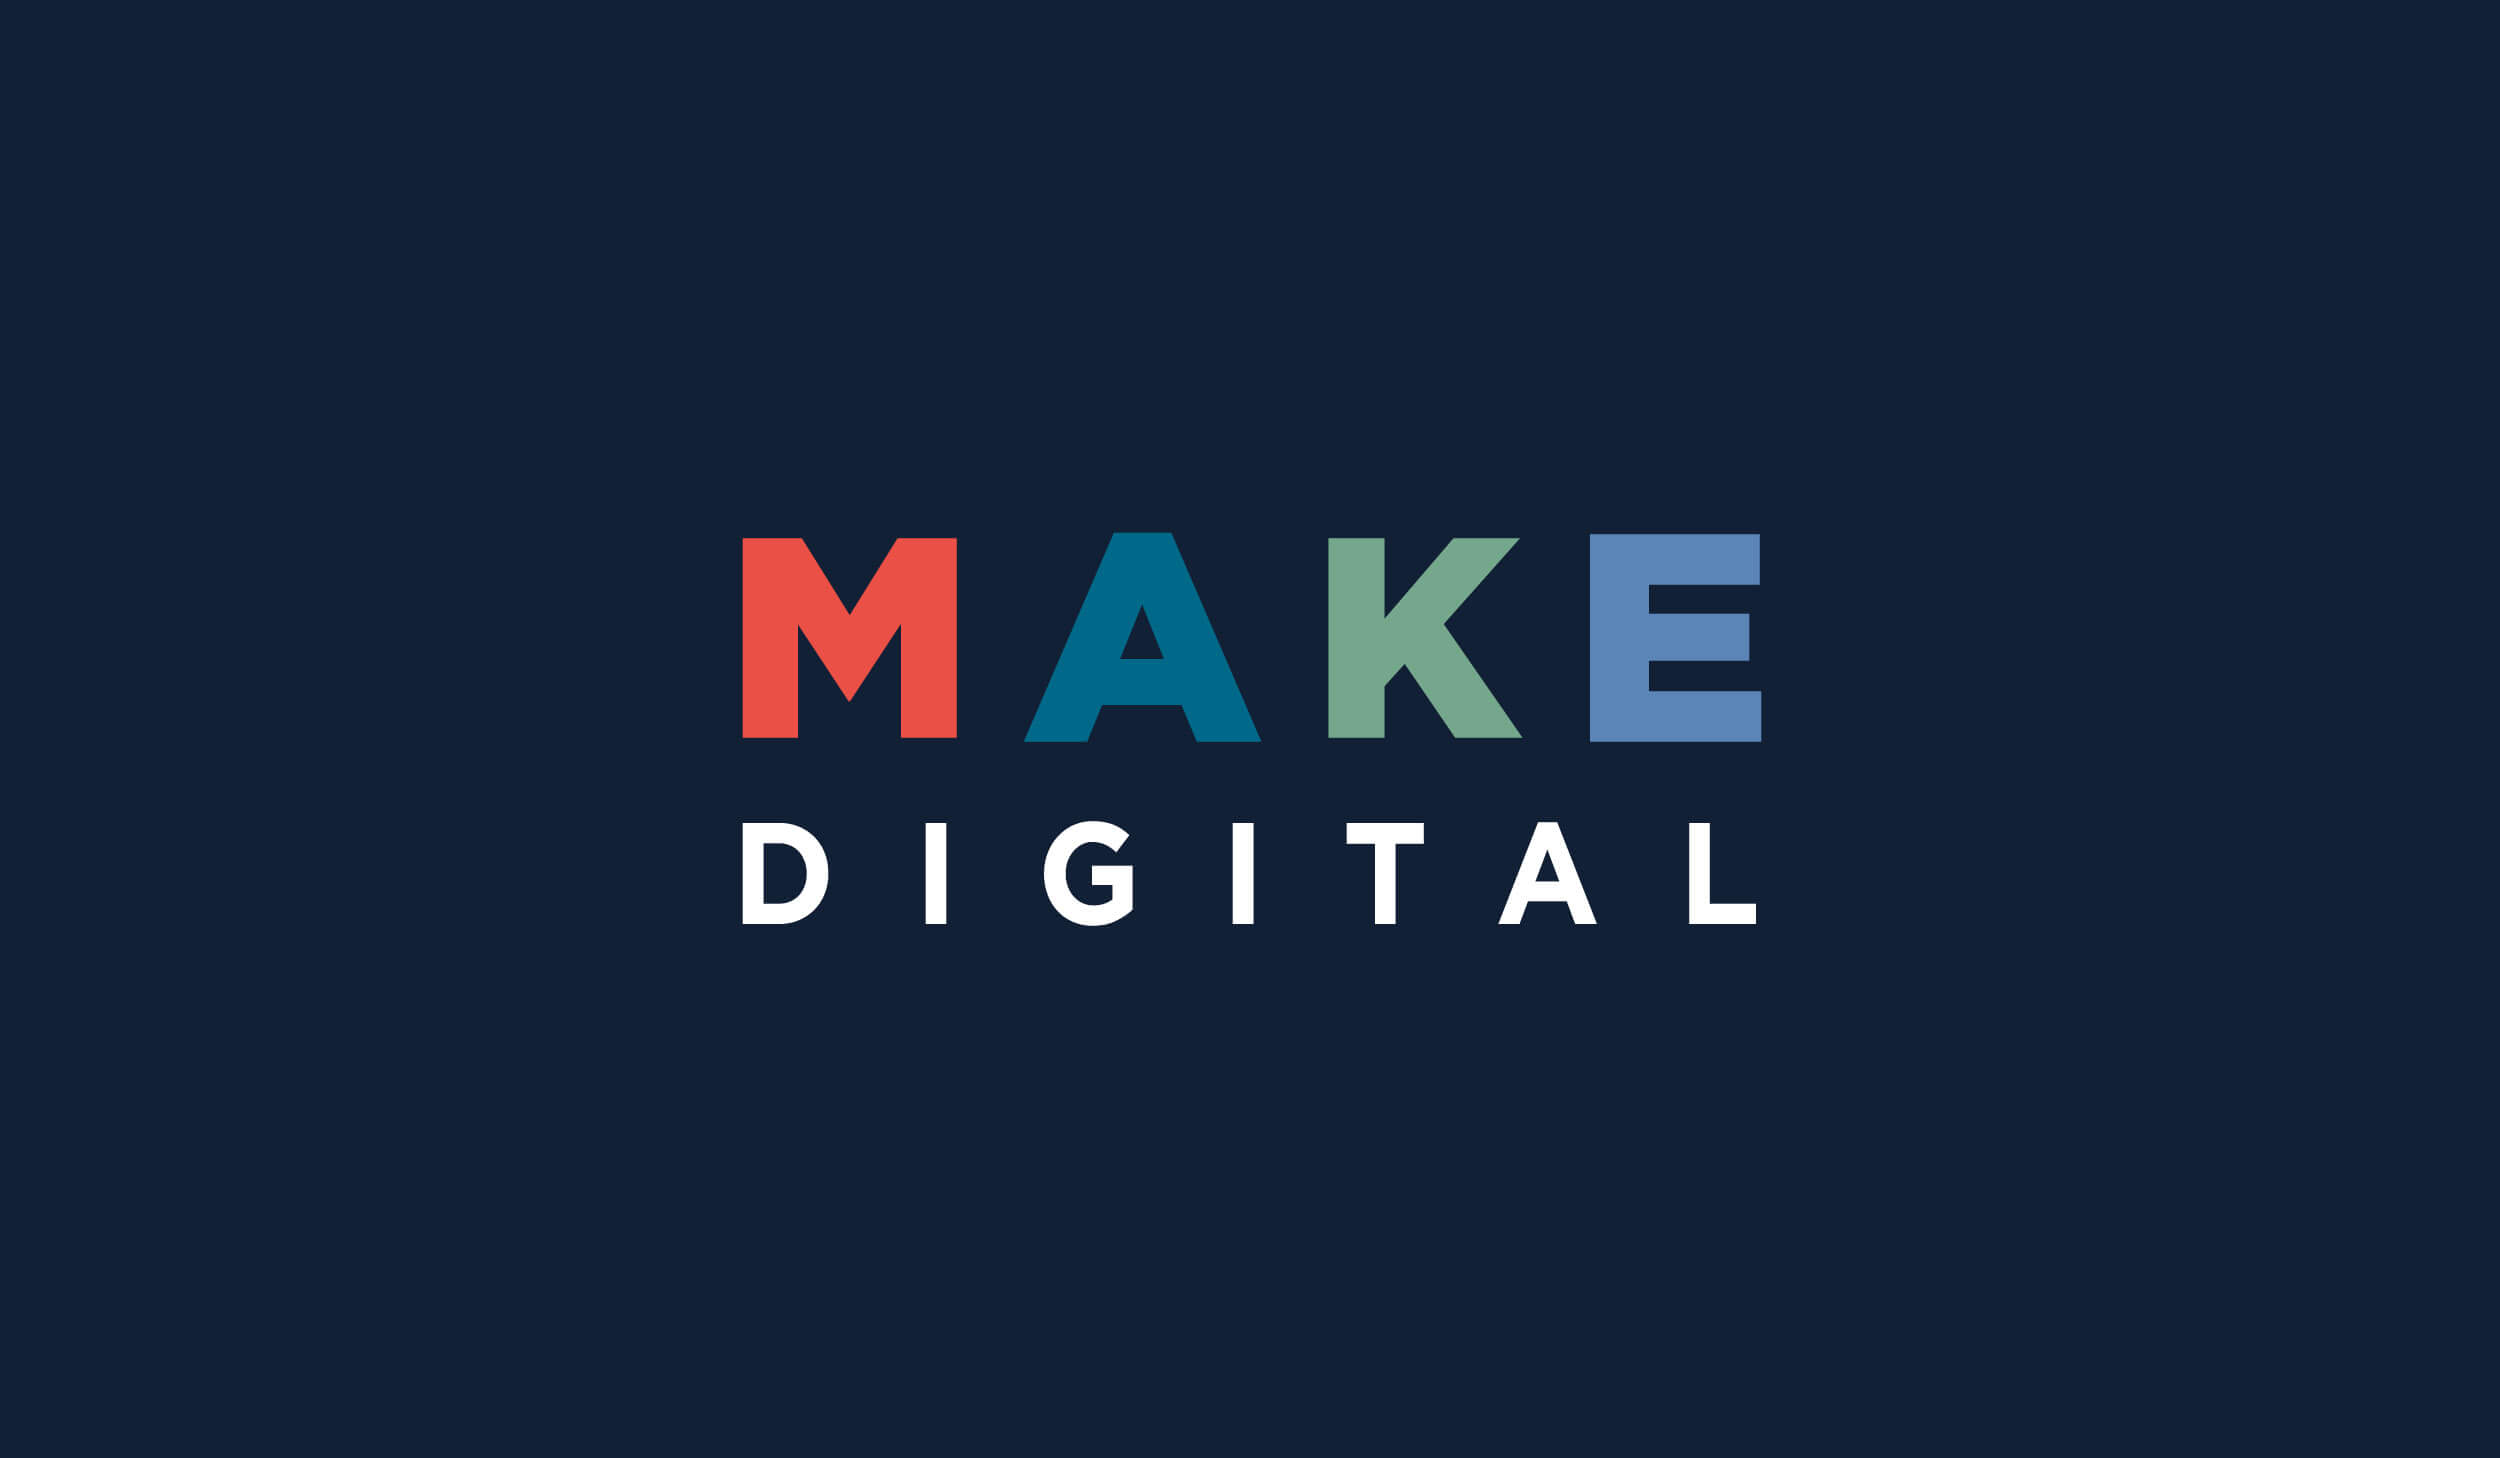 Make Digital